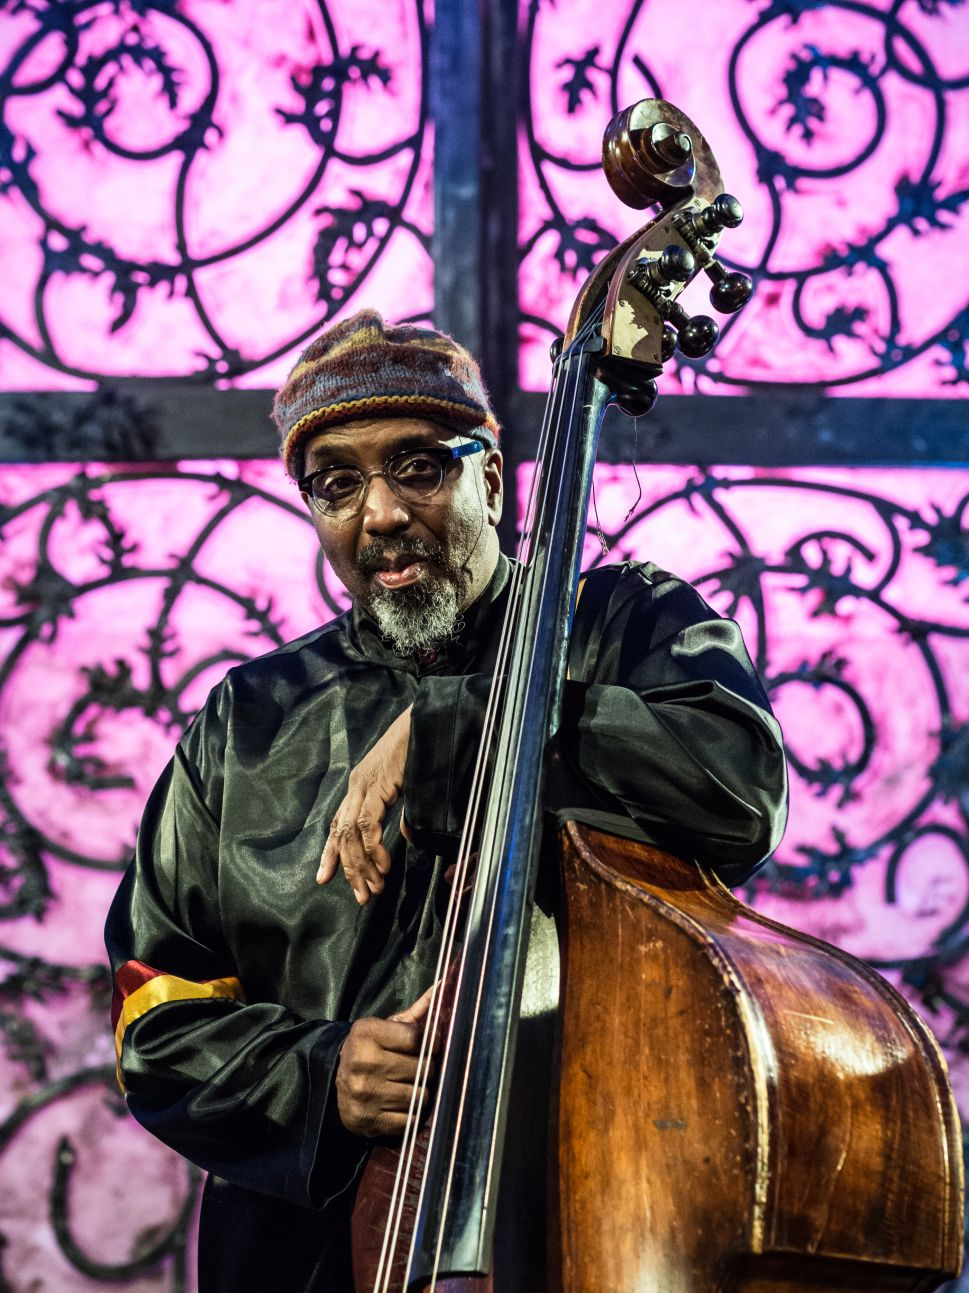 The Best in Jazz: William Parker, Catherine Marie Charlton and More